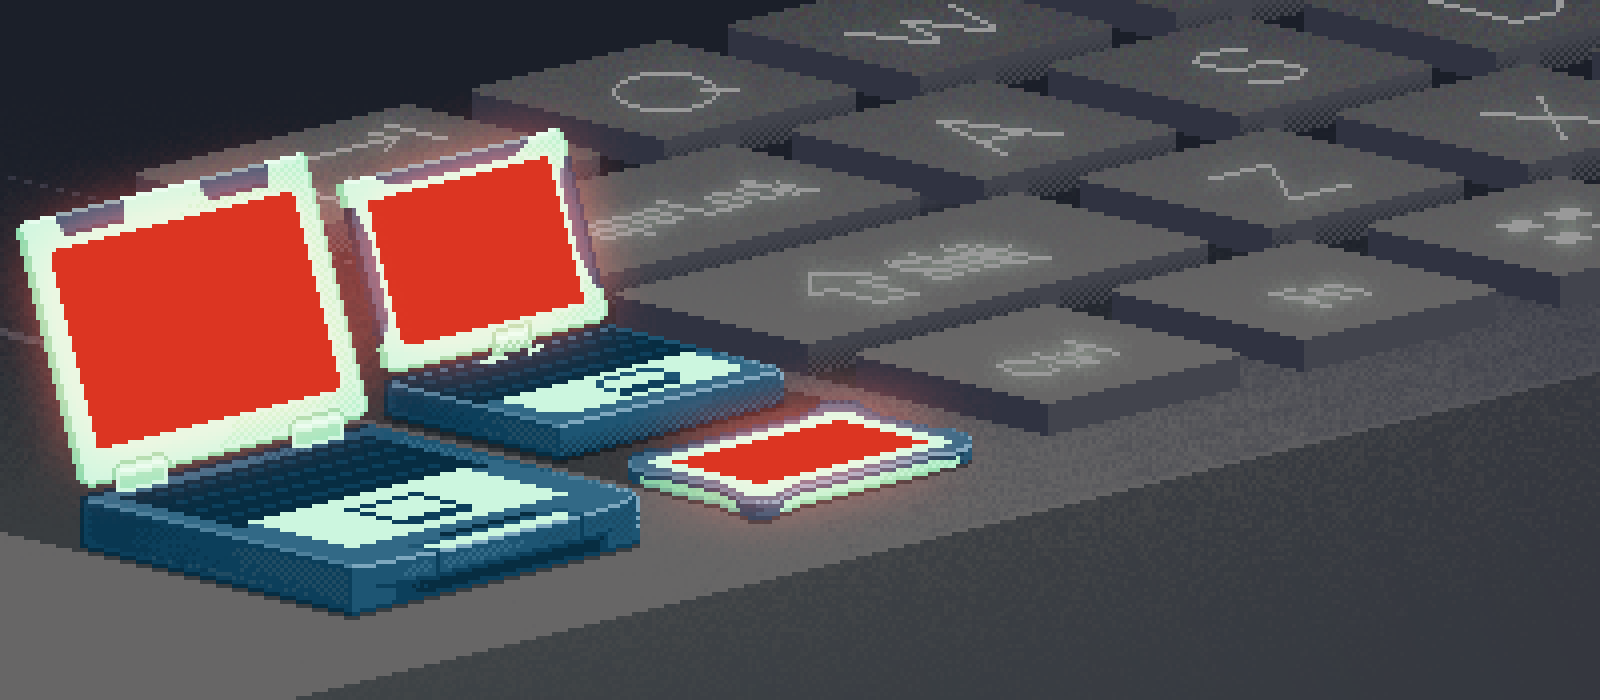 Pixel-art Toughbooks and a giant keyboard sit on a mysterious ledge or something